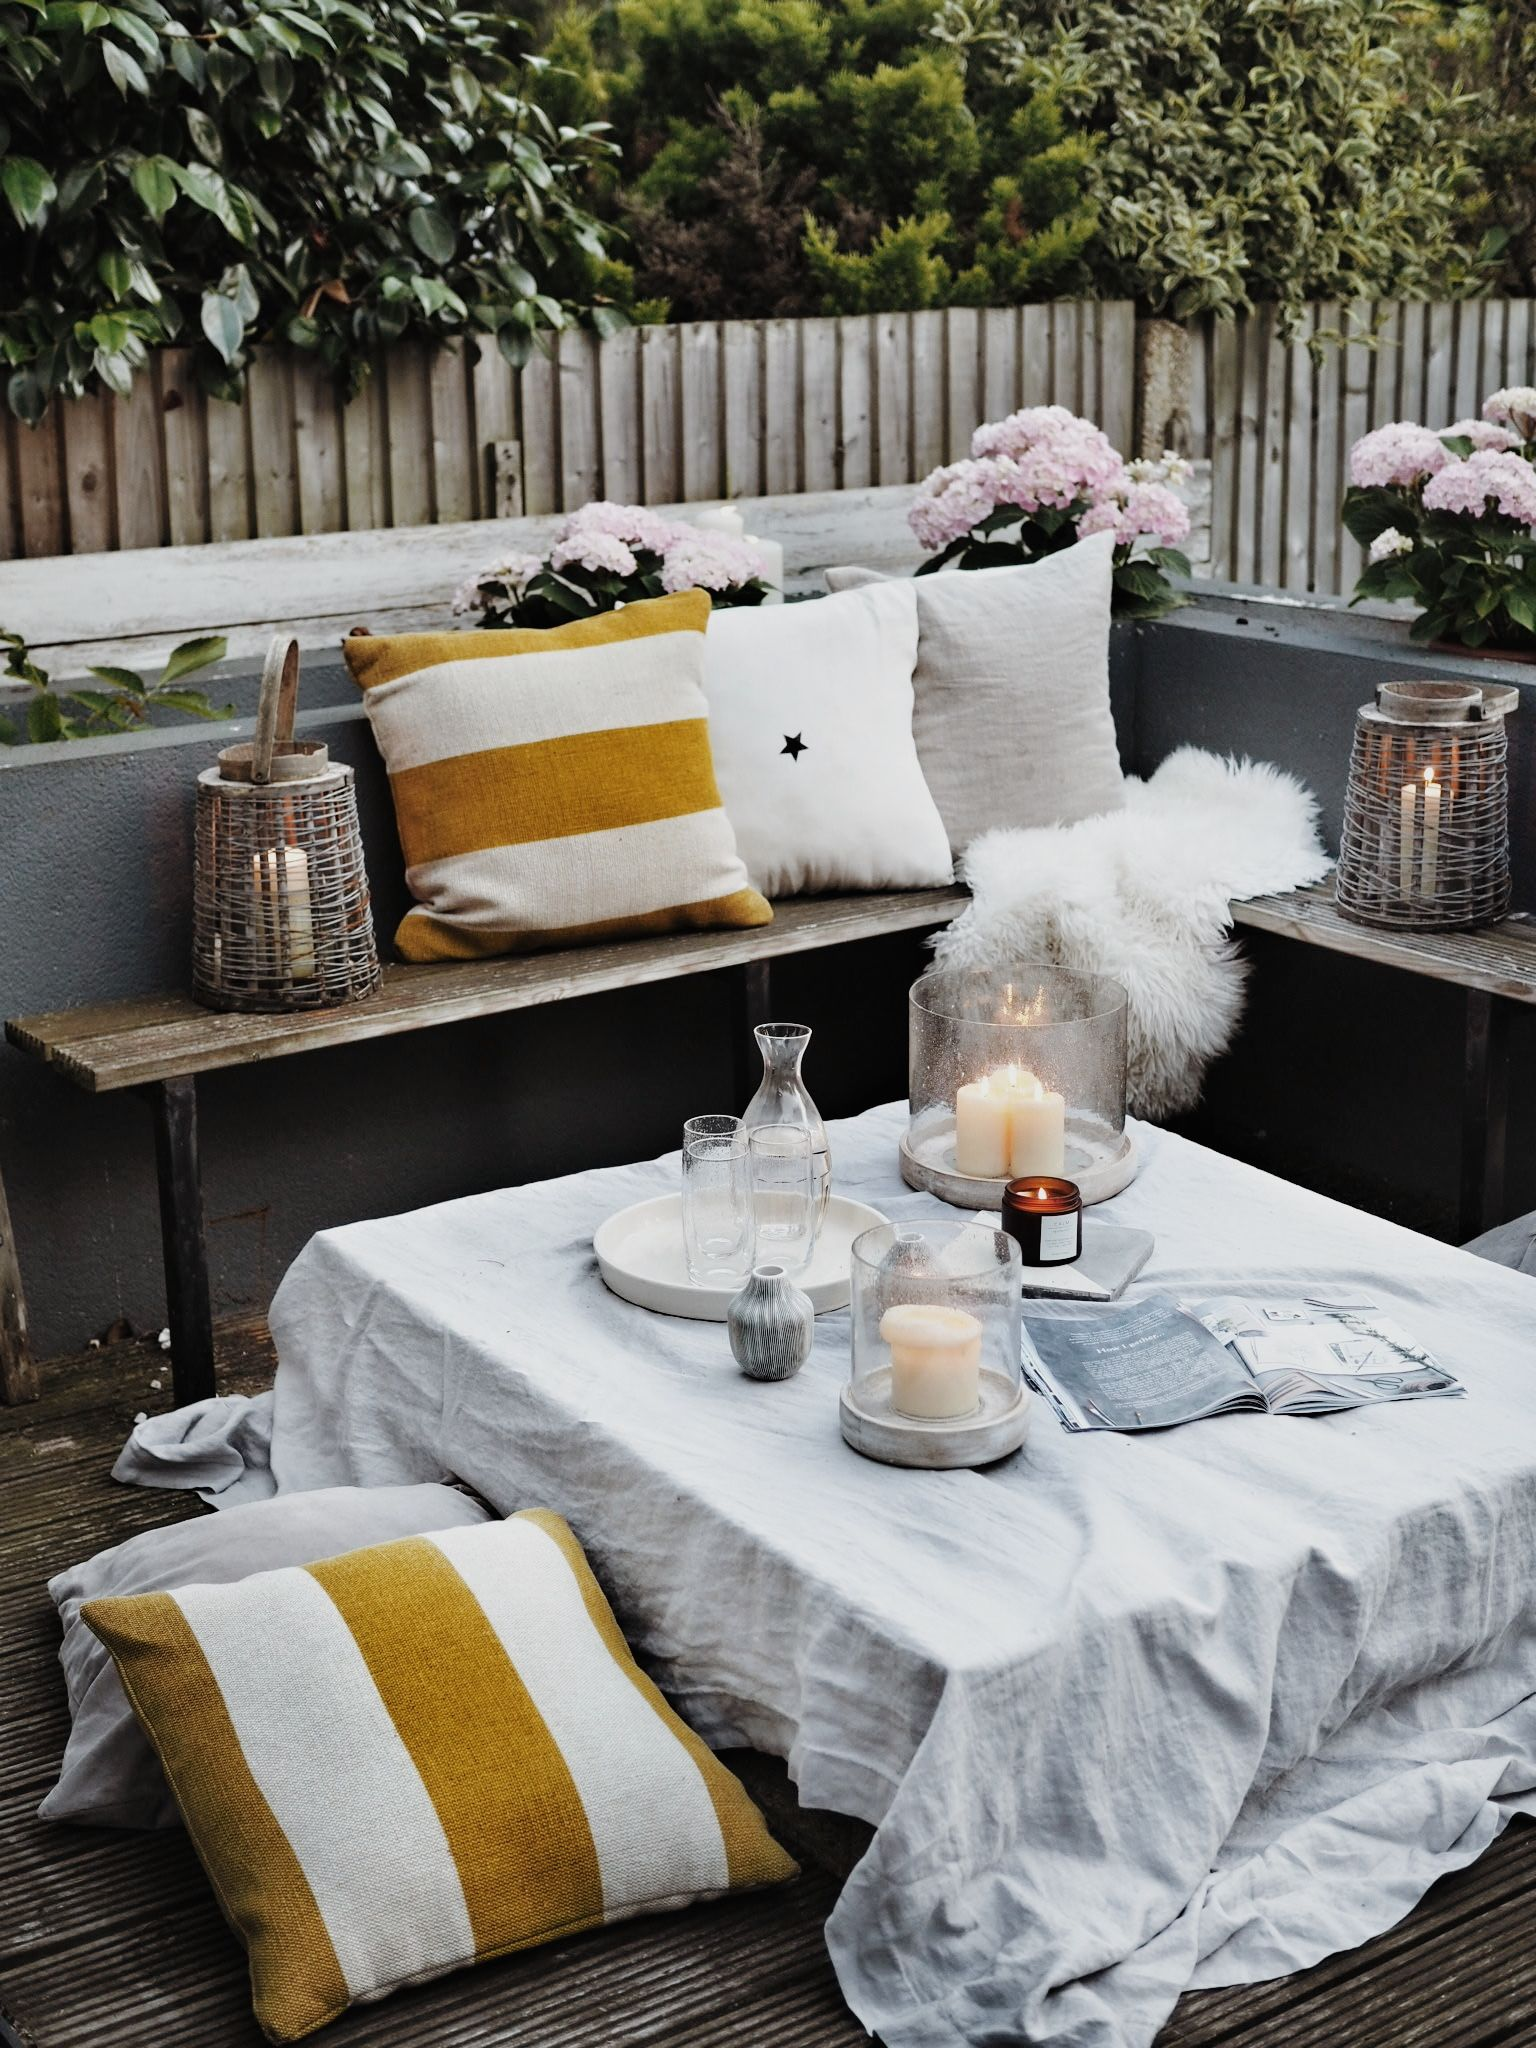 Marks & Spencer Garden Styling 2.jpg